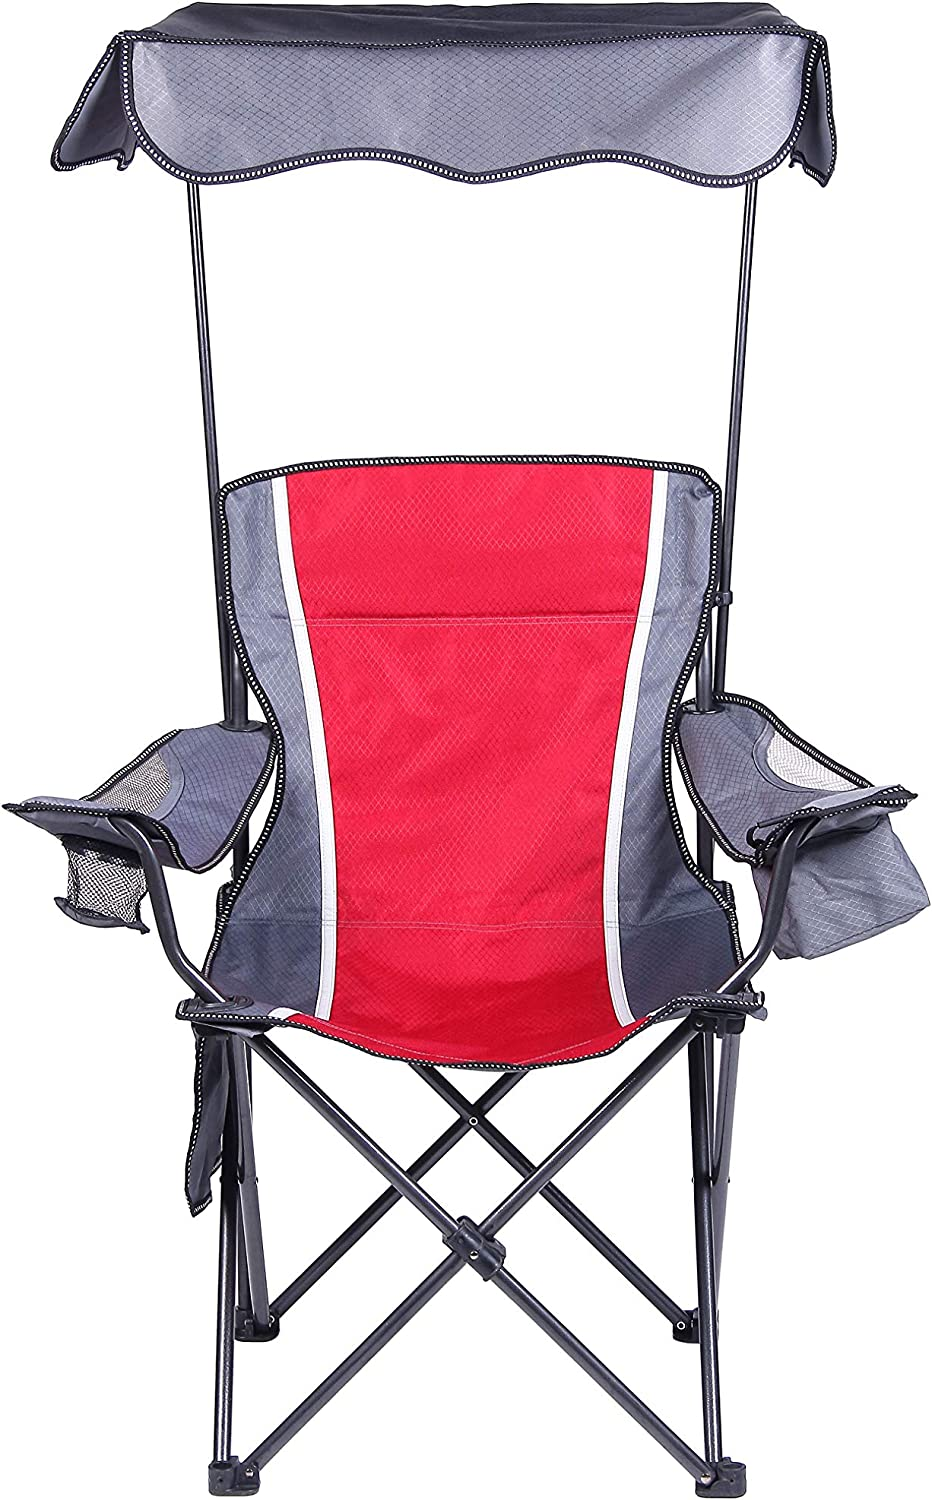 Camp Field Portable Folding Chair with Arm Rest Cup Holder and Carrying and Storage Bag